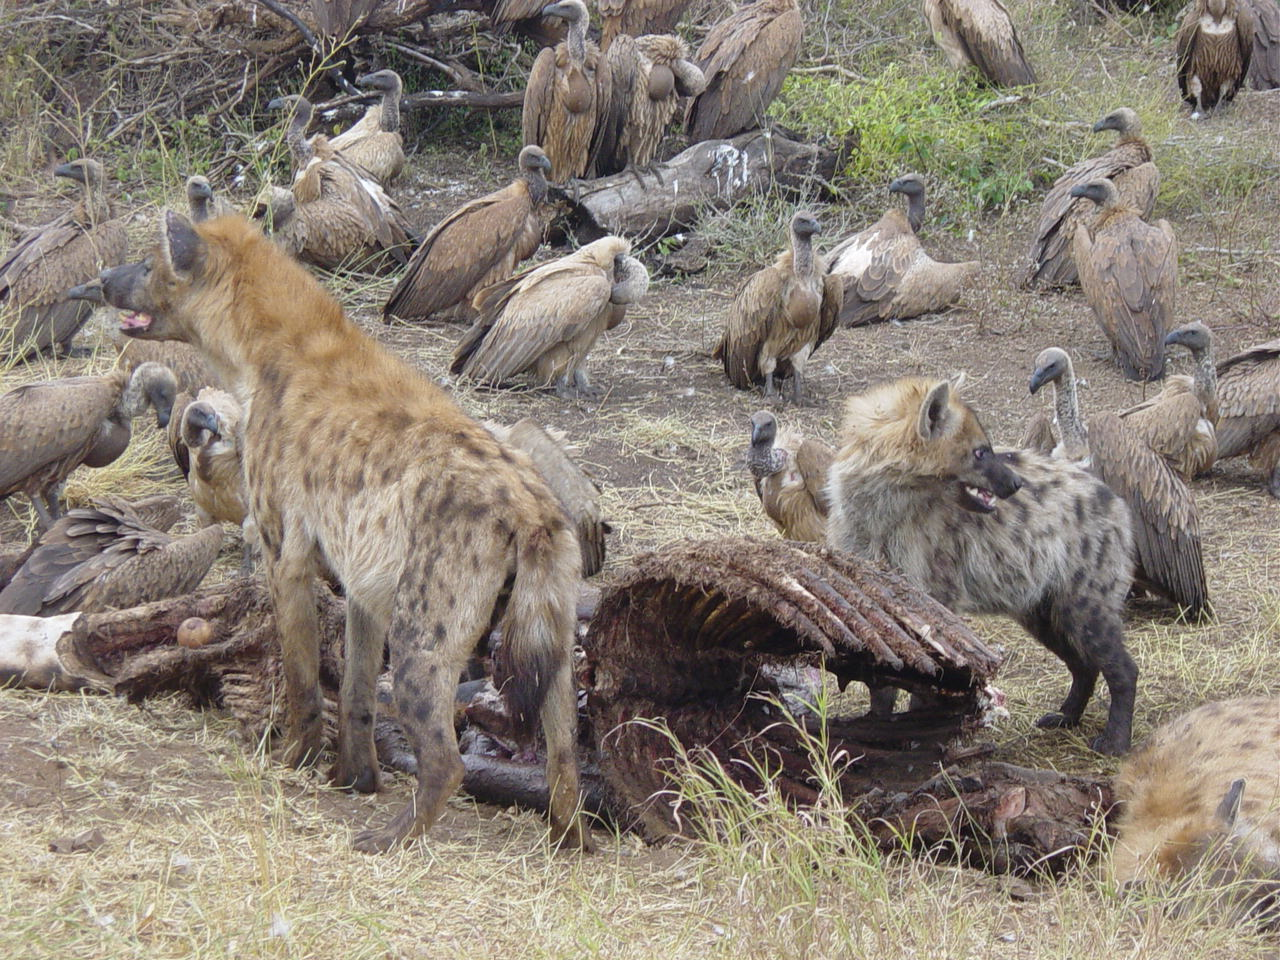 What Food Do Lions Eat In The Wild